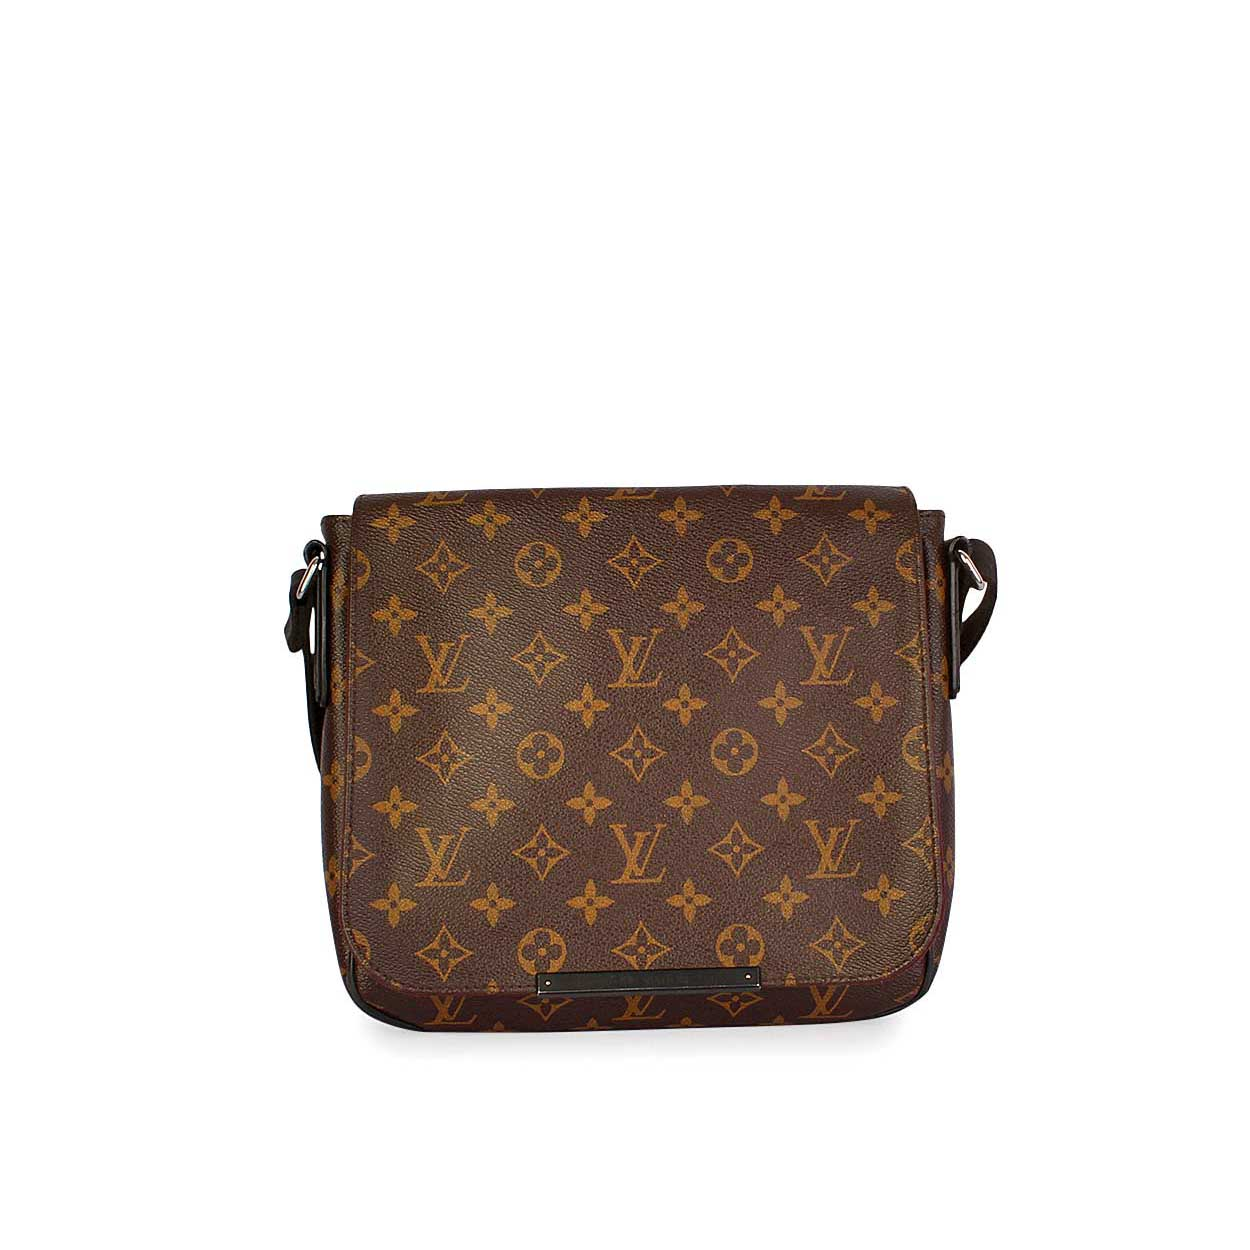 louis vuitton monogram district pm messenger bag luxity. Black Bedroom Furniture Sets. Home Design Ideas